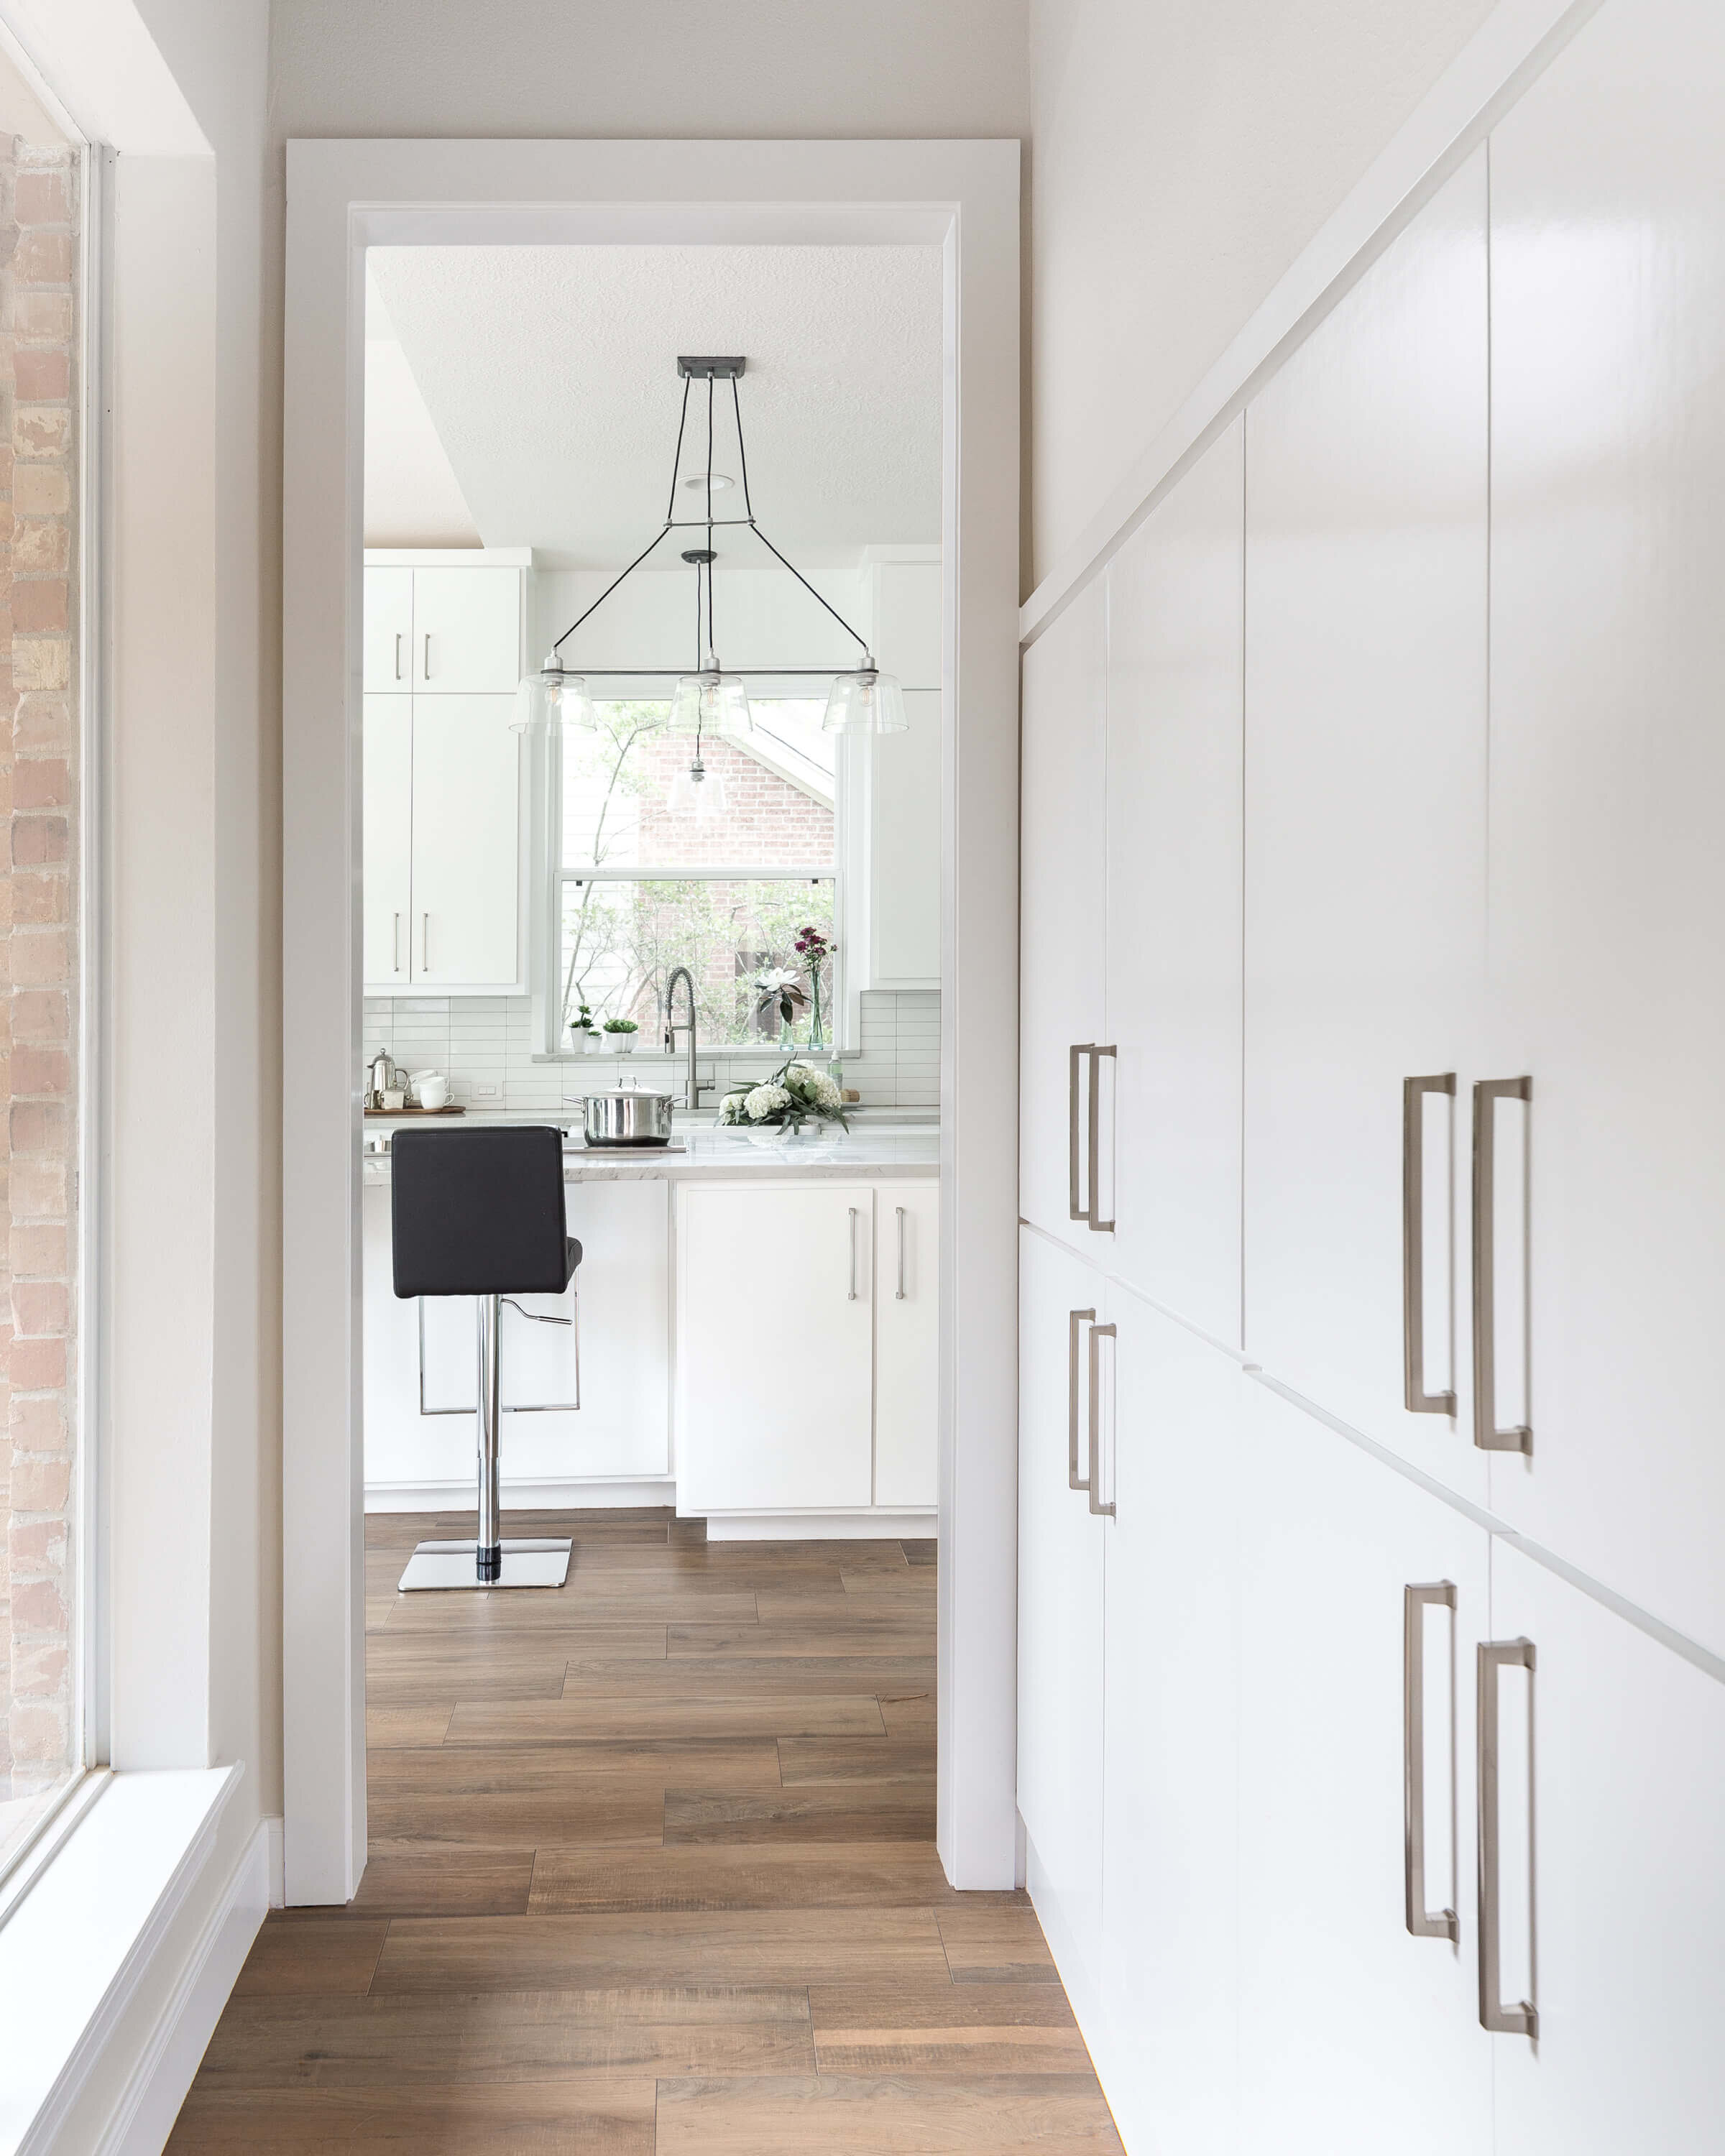 This kitchen, located in a separate room of the house with the breakfast room, does well with a low bar. Carla Aston, Designer | Colleen Scott, Photographer | #whitekitchen #kitchenbar #kitchendesign #kitchencountertop